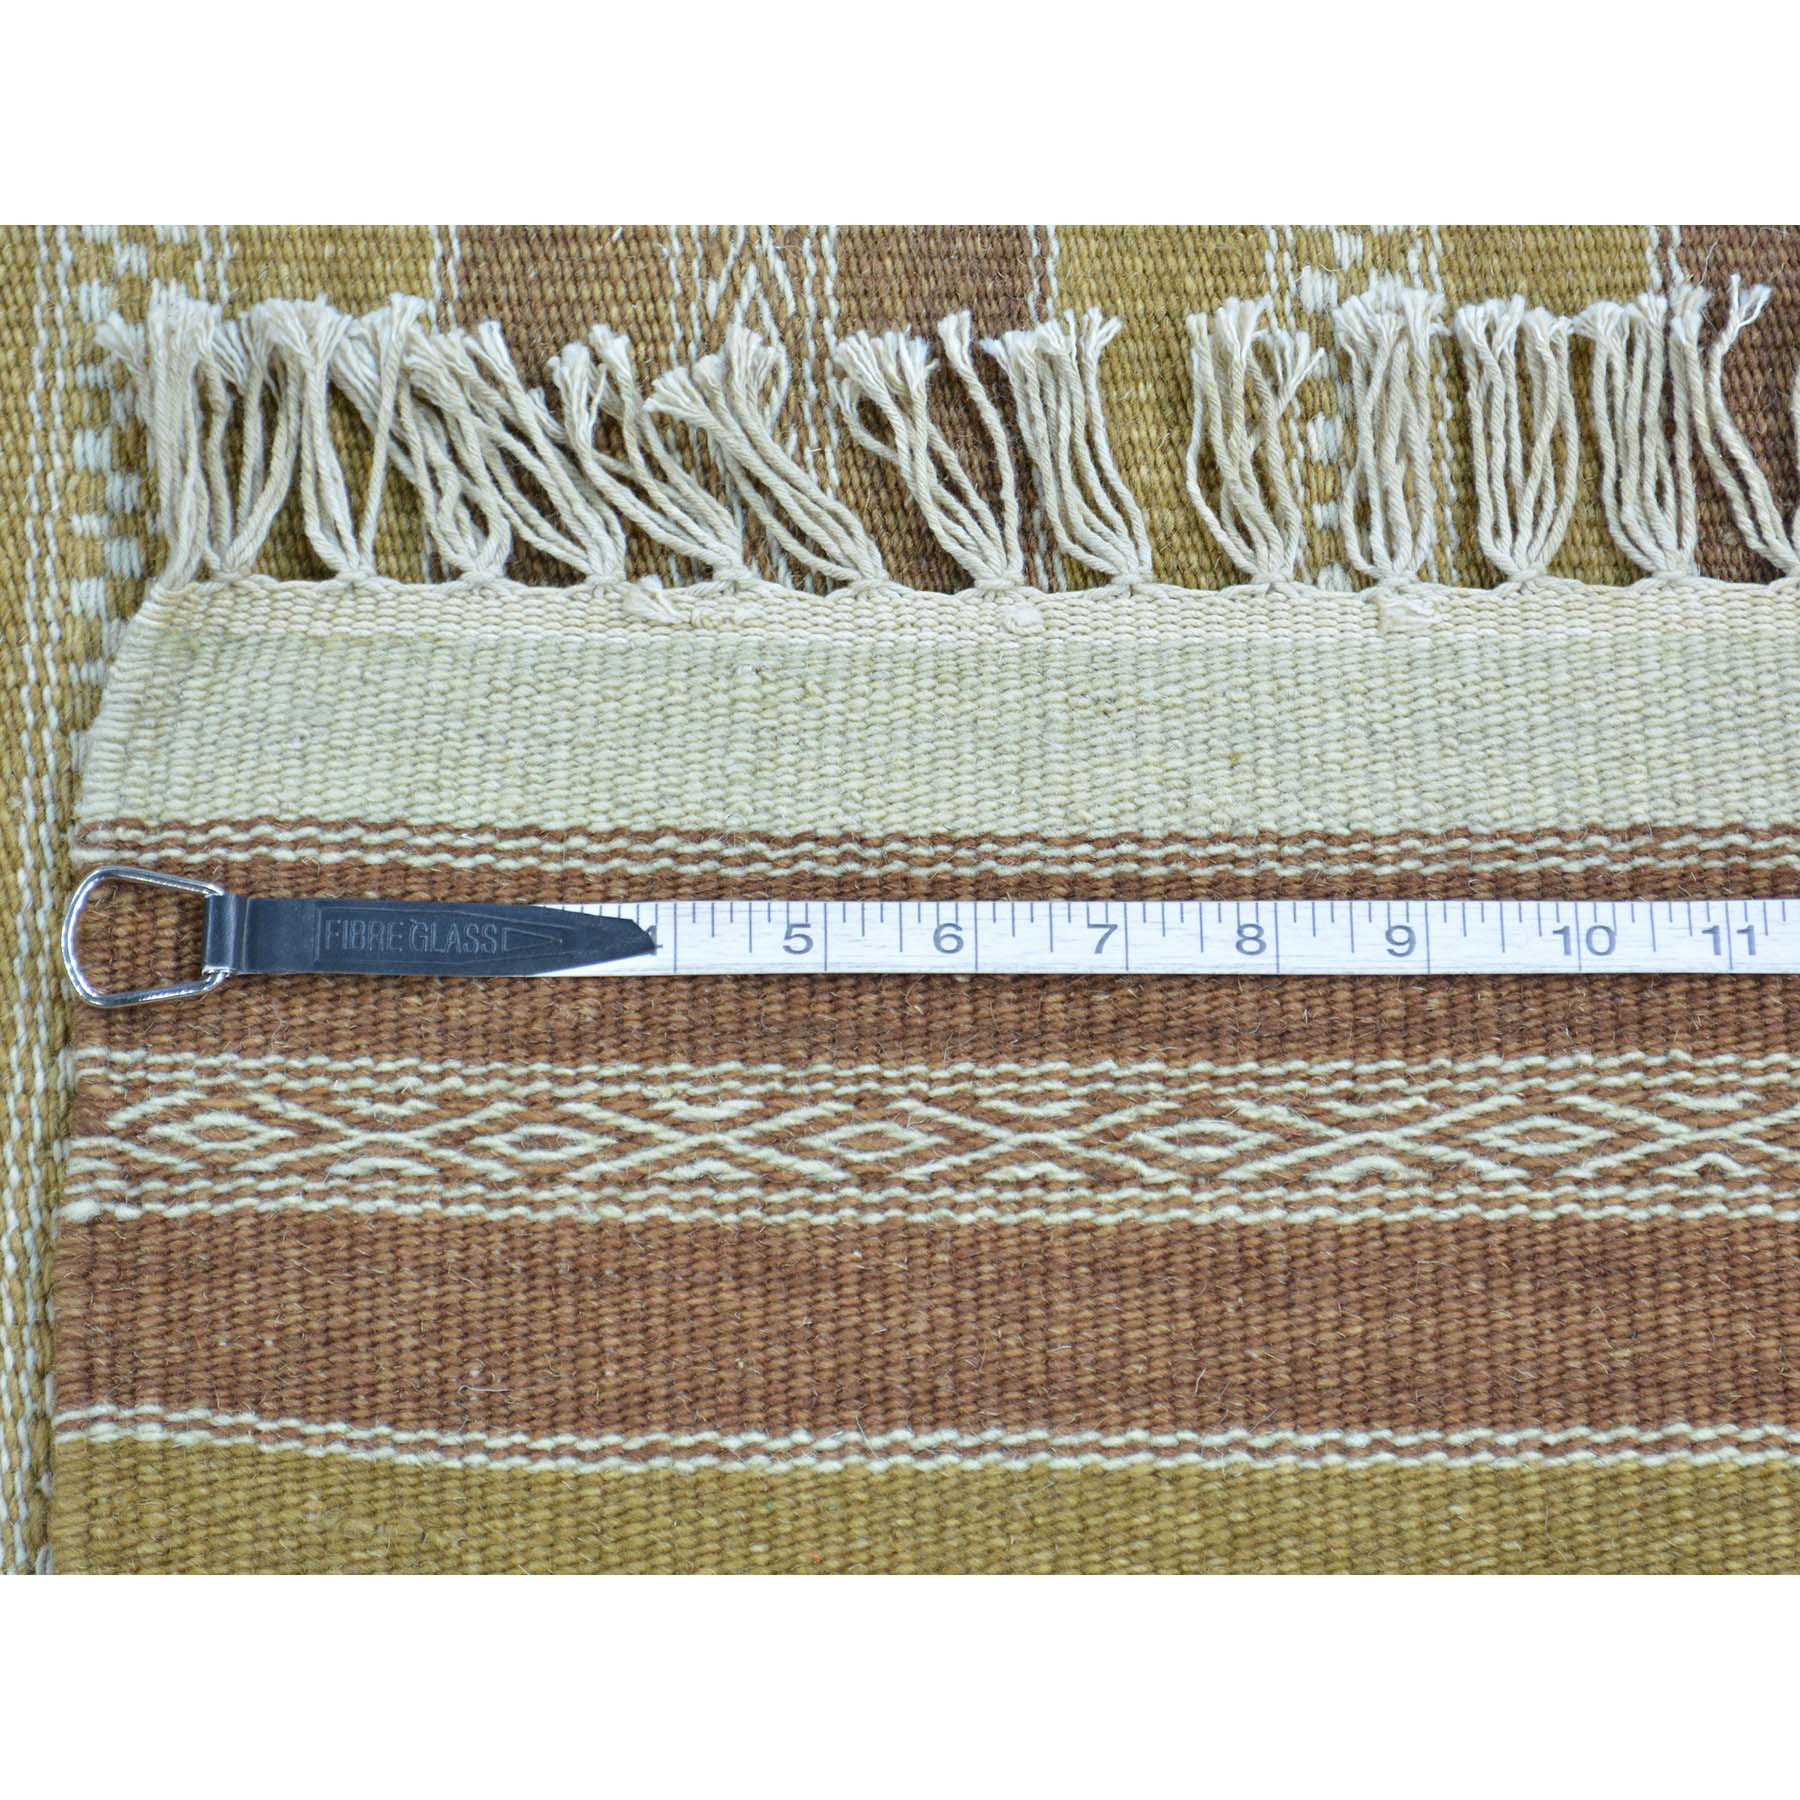 2-9 x5- Flat Weave Reversible Durie Kilim Hand Woven Pure Wool Rug